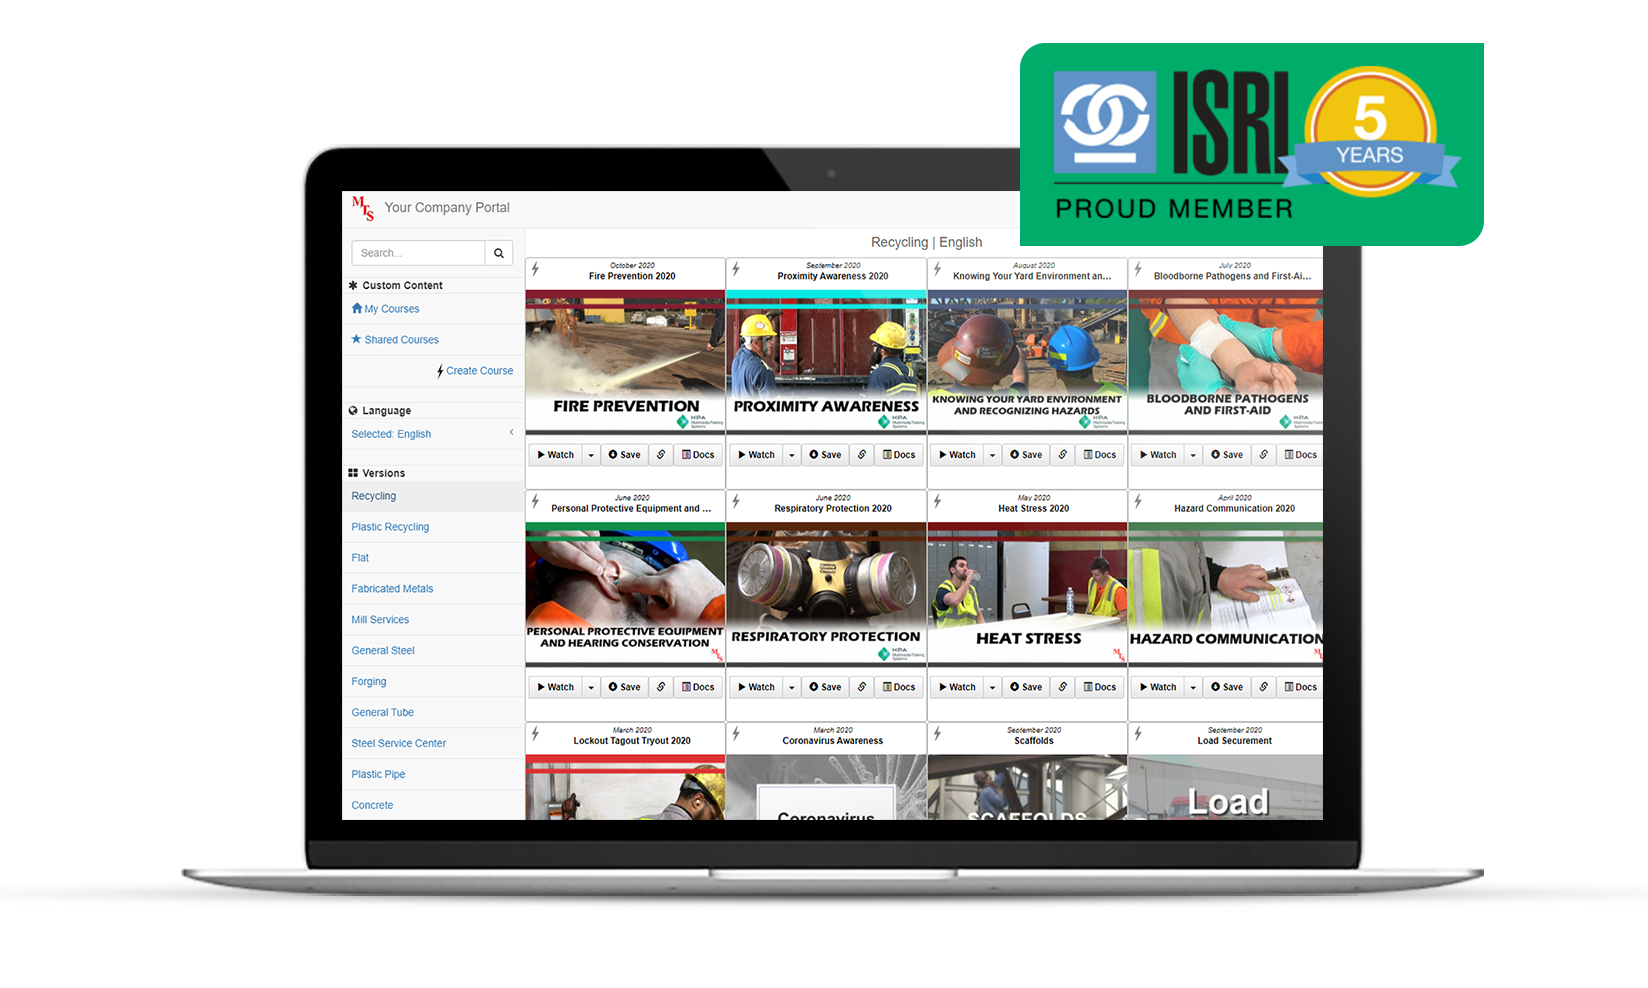 Subscription to Safety video library on a desktop display with an ISRI member badge